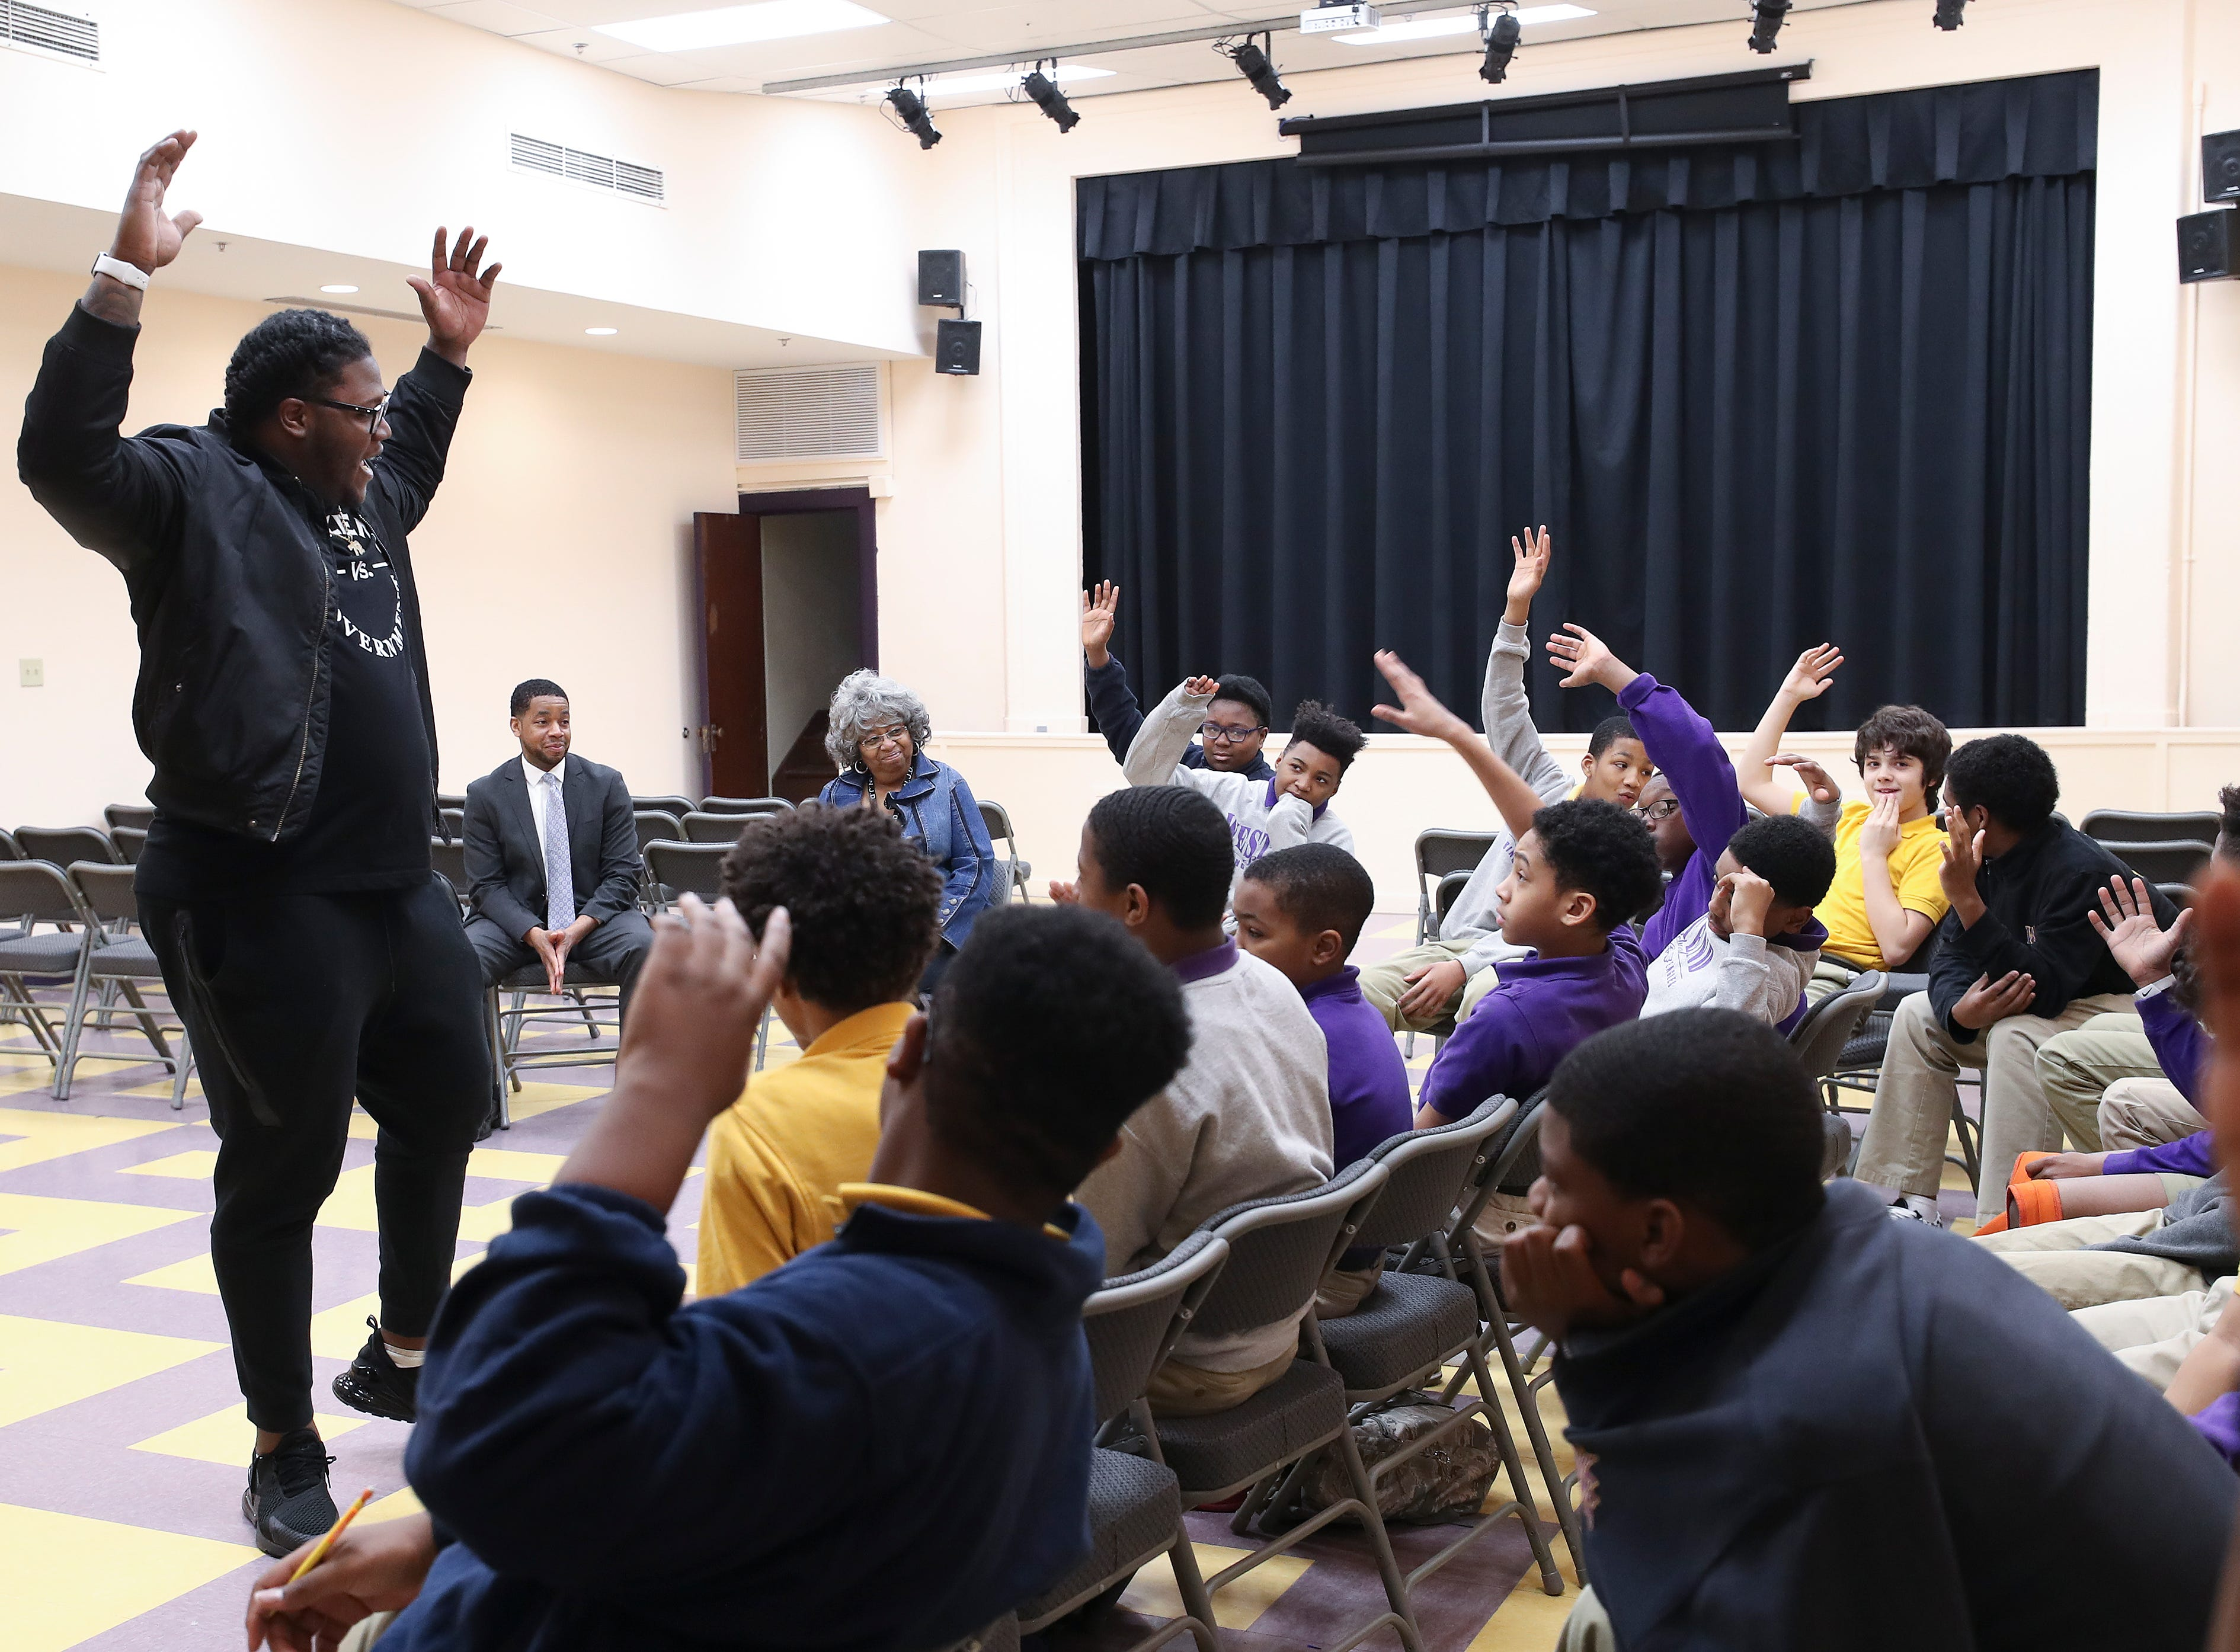 Jamon Brown, a former U of L football player who is in the NFL now, spoke to a group of students at the West End School about ways to prevent bullying.  He asked the students to raise their hands if they could commit to helping to prevent bullying.  He plays right guard for the New York Giants.Feb. 11, 2019